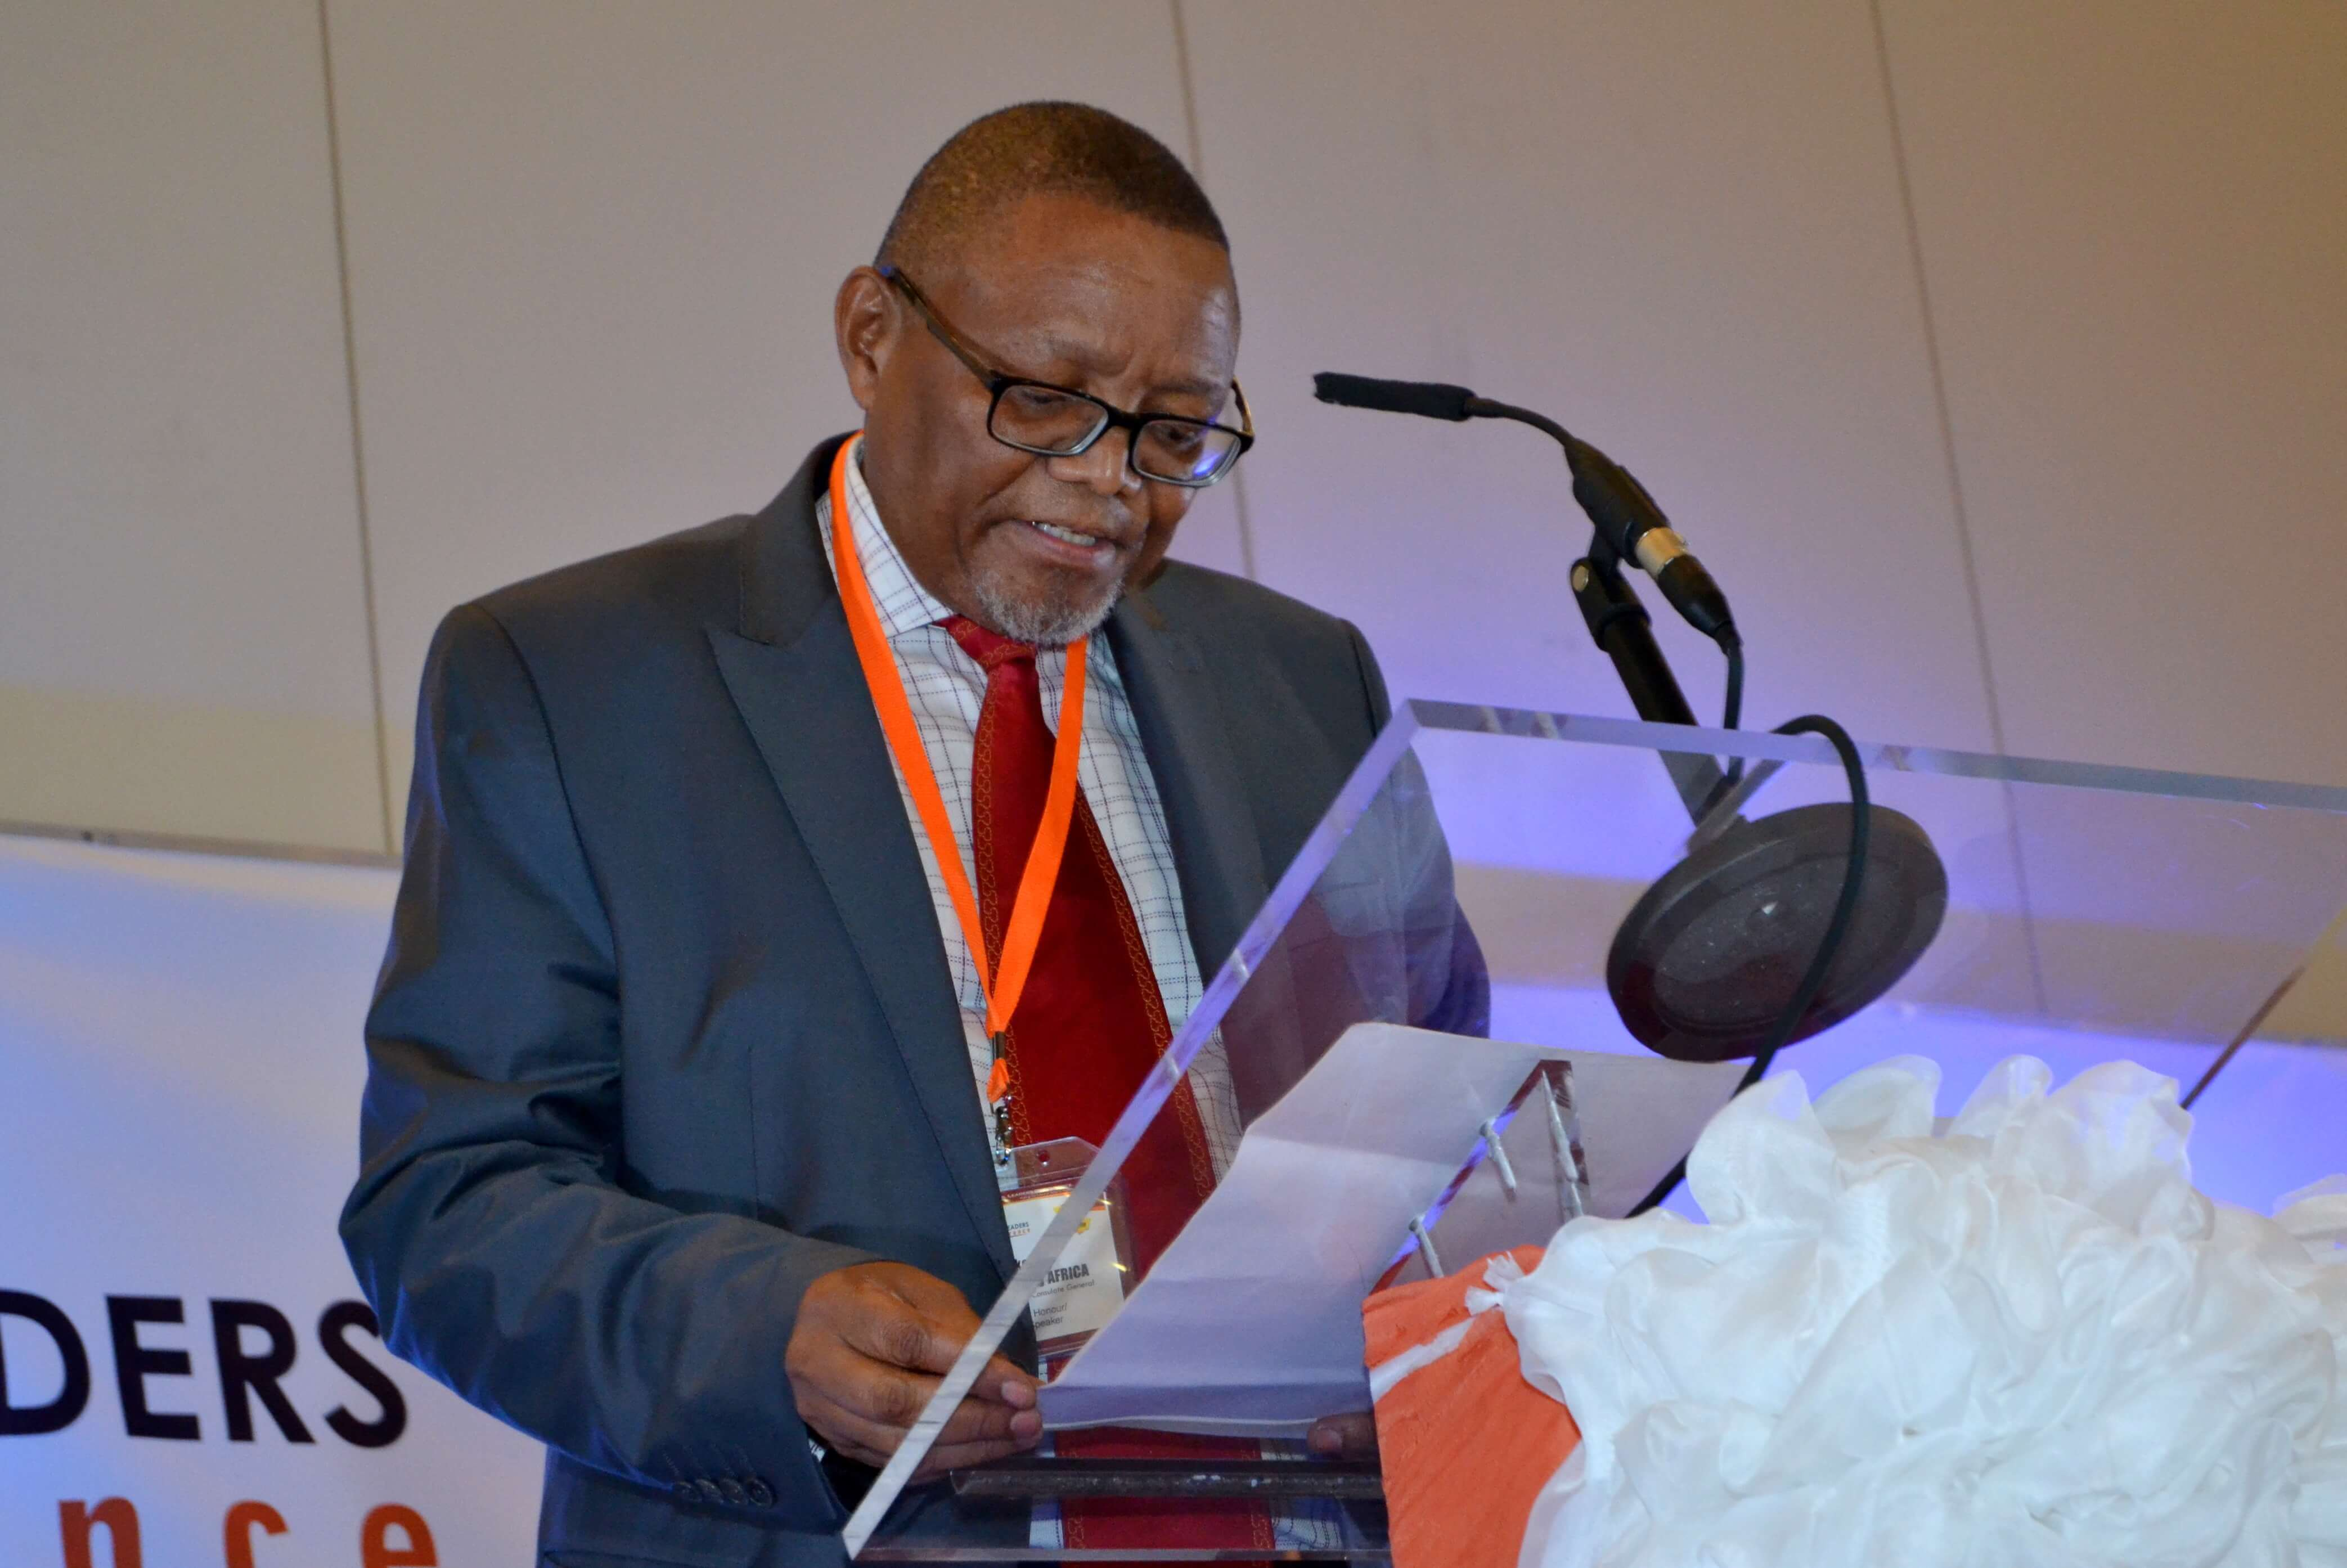 Retailers must invest in learning and development to succed – His Excellency Darkey Africa